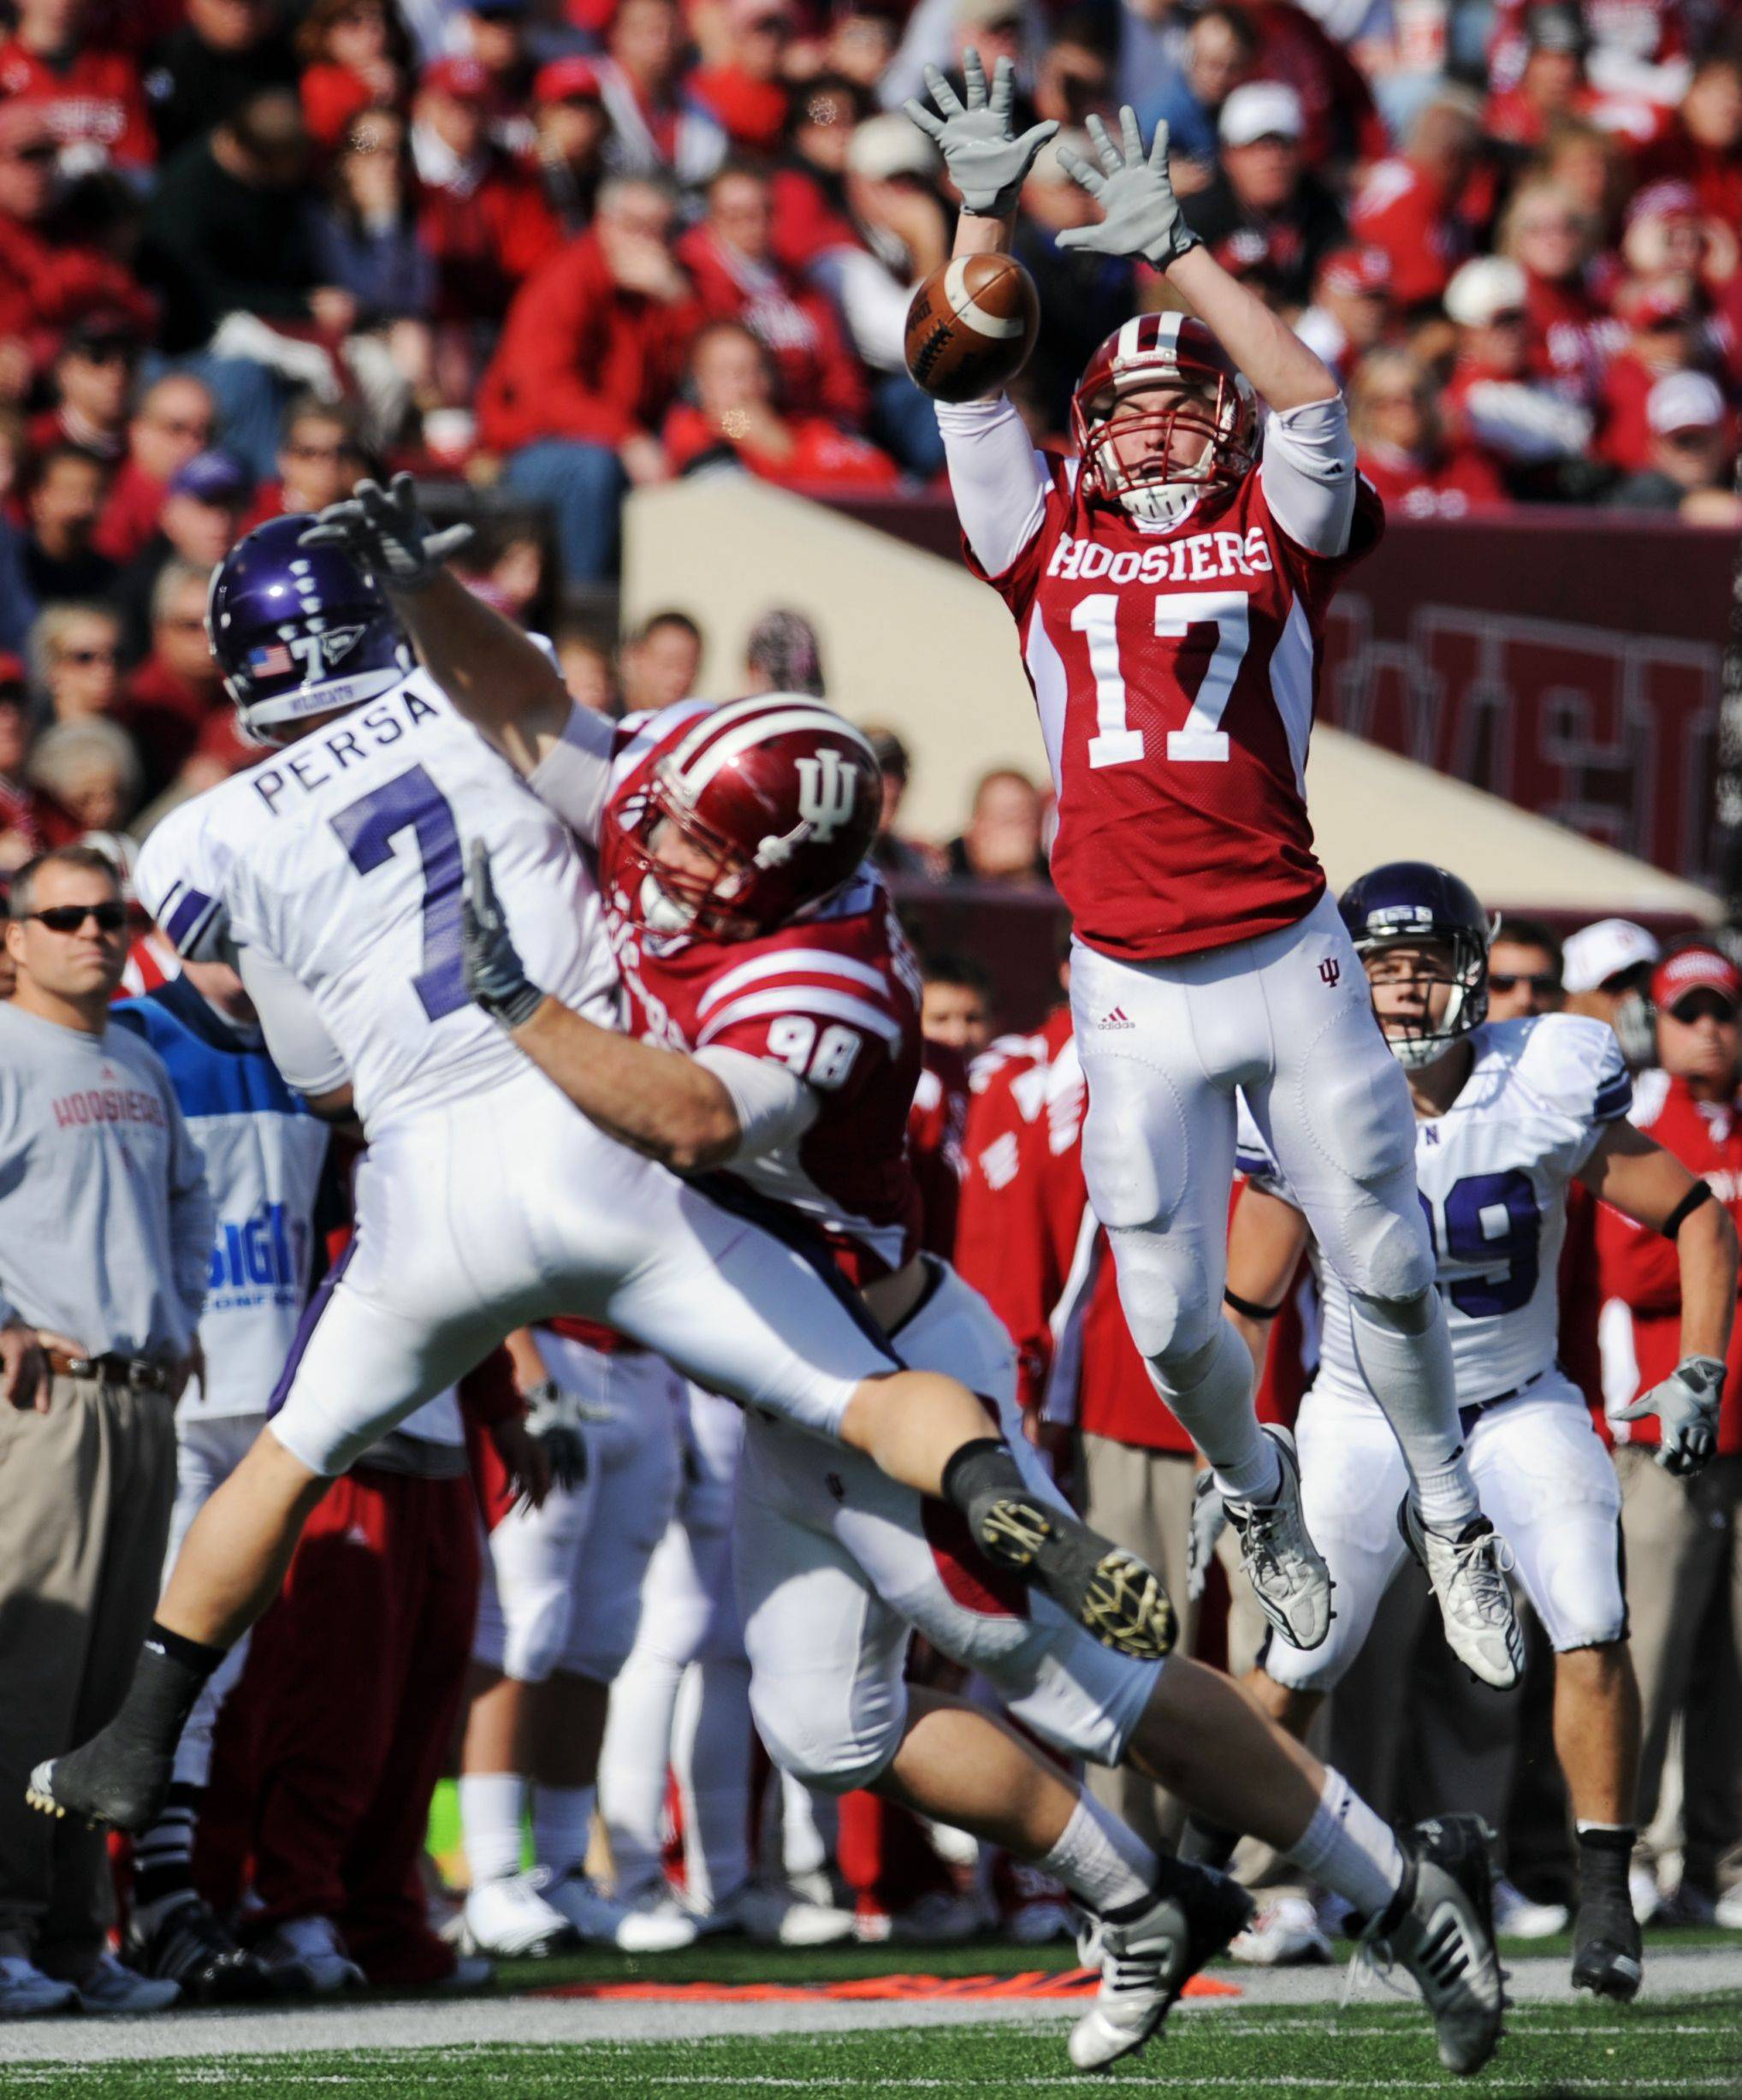 Northwestern quarterback Dan Persa is no stranger to pressure in the pocket.